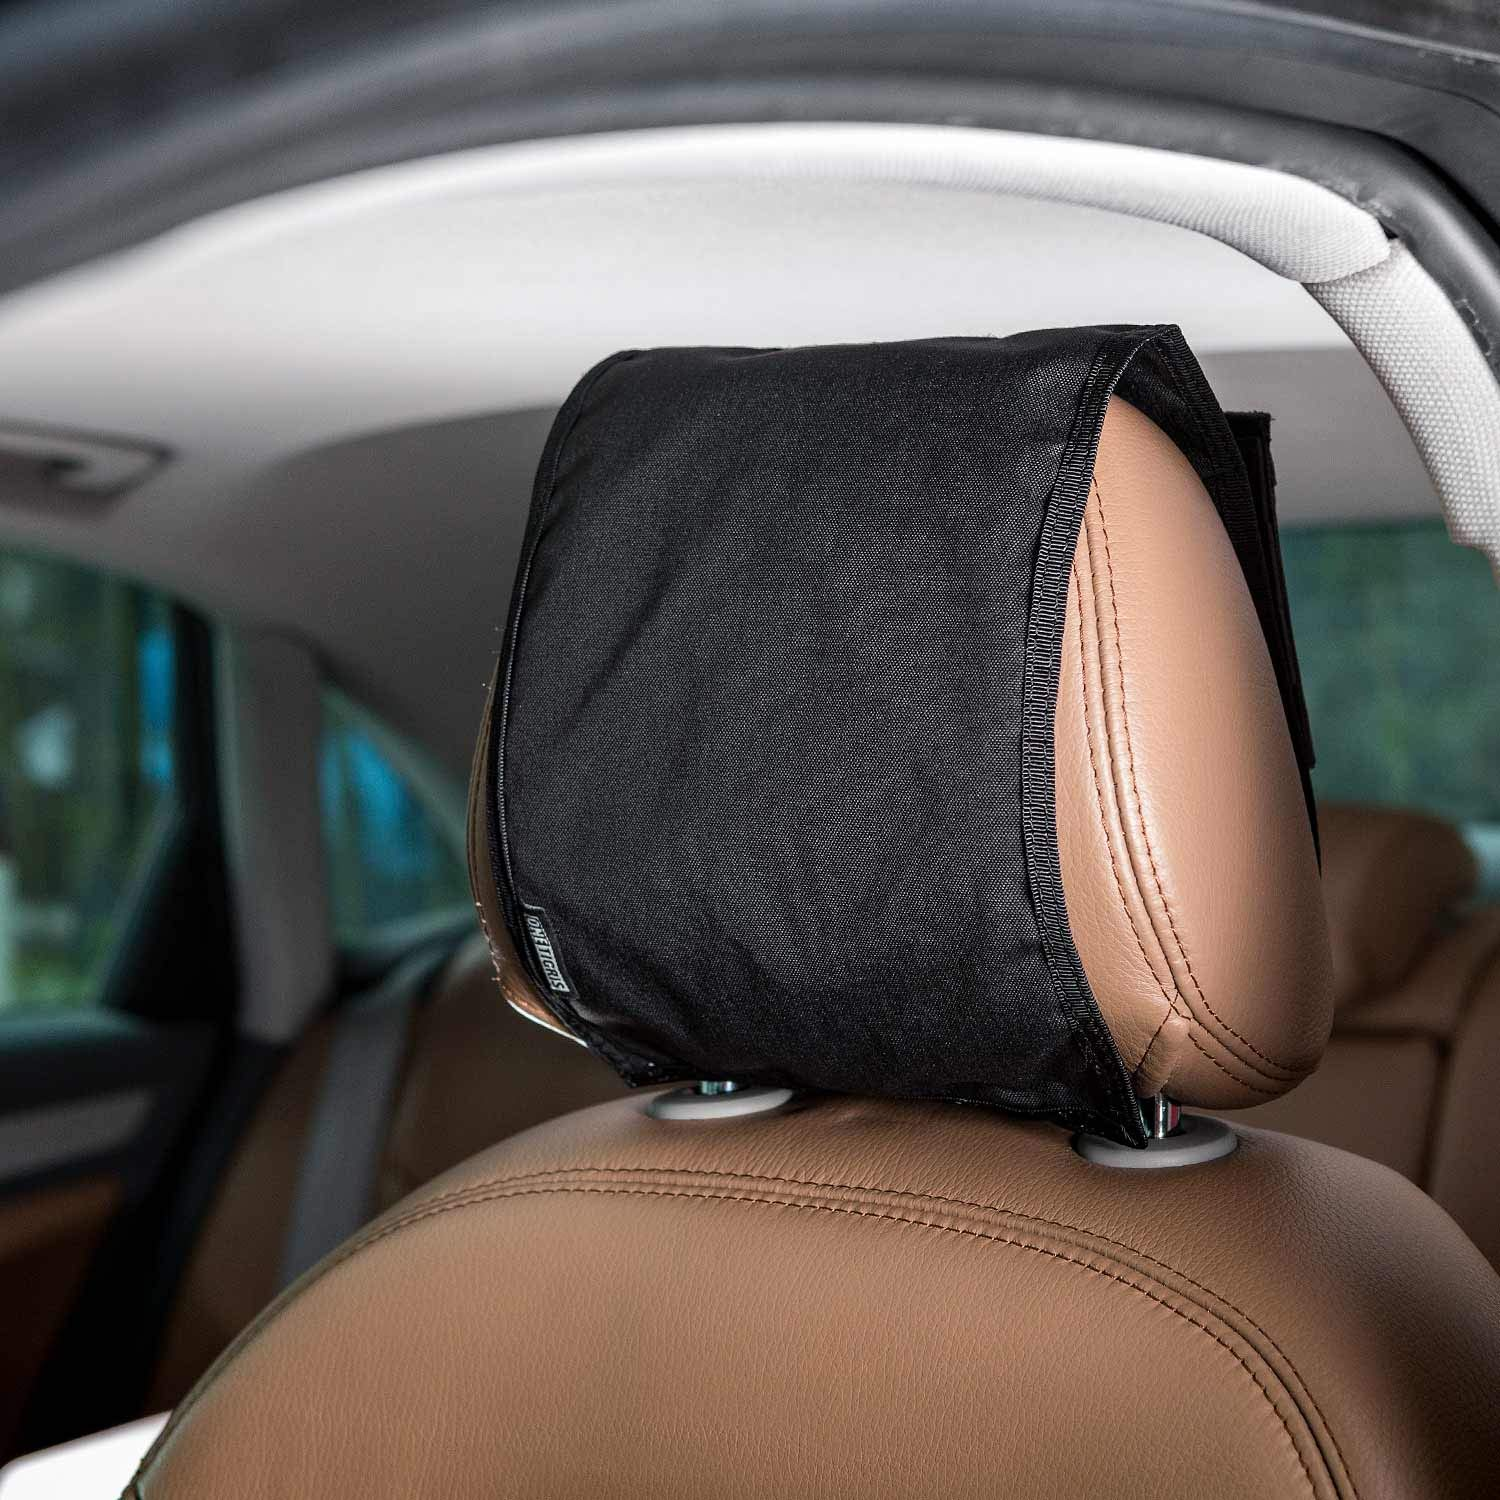 OneTigris Tactical Headrest Cover with MOLLE Back Panel for Car Seat (Black) 1T Gear